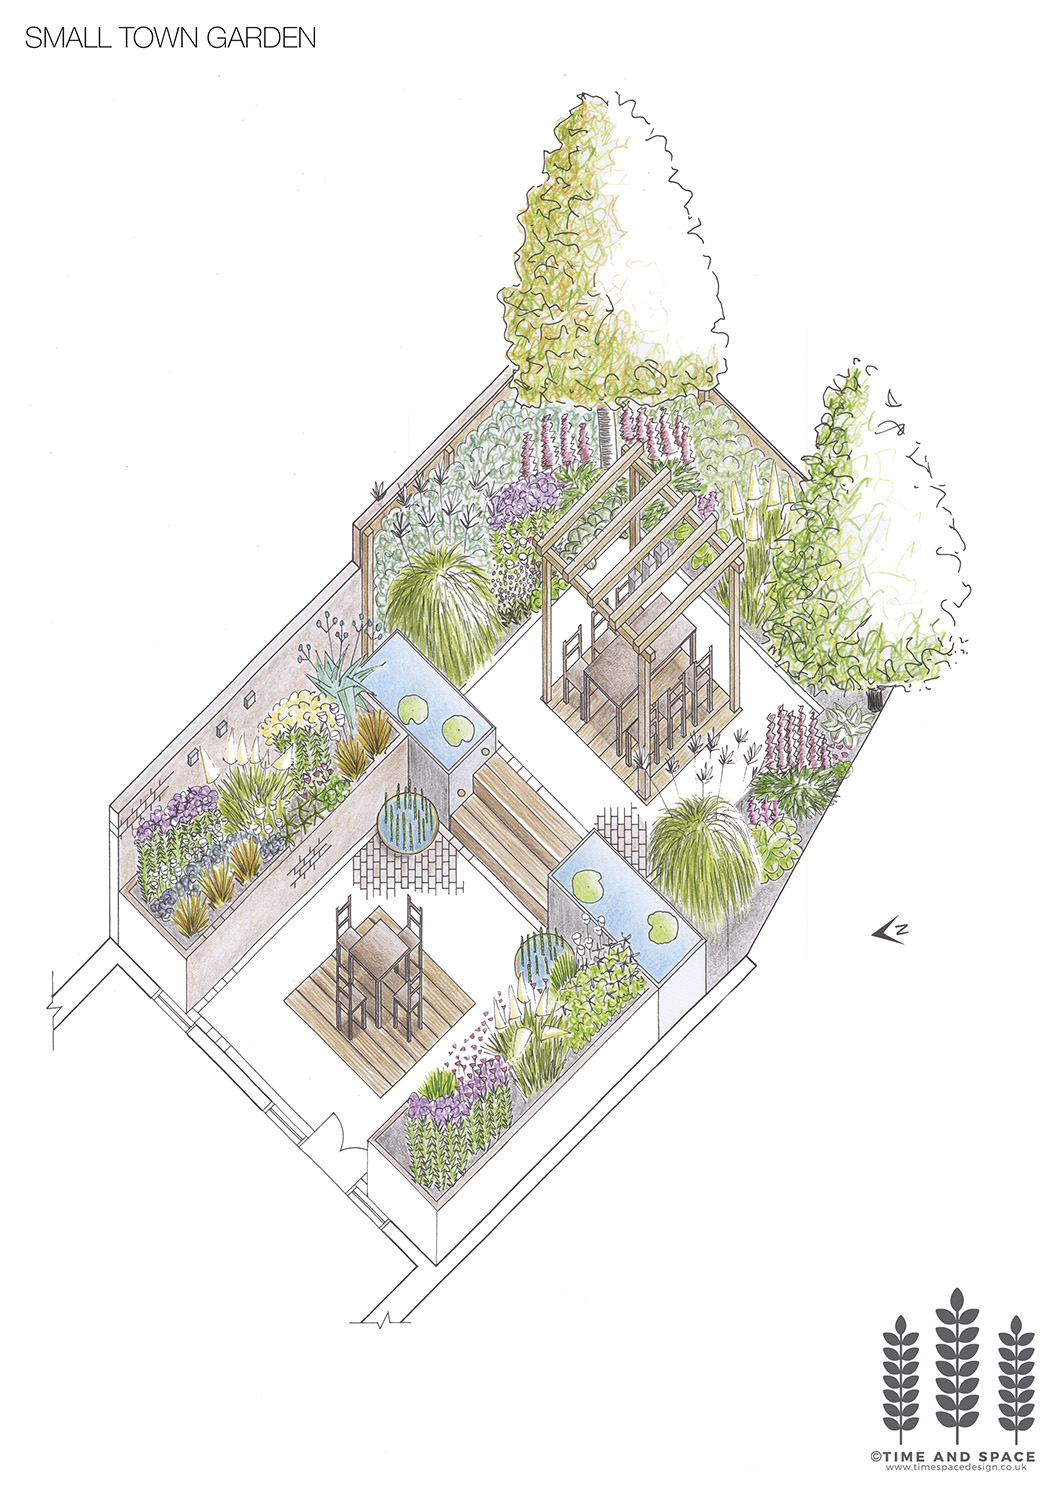 Small town garden axonometric drawing